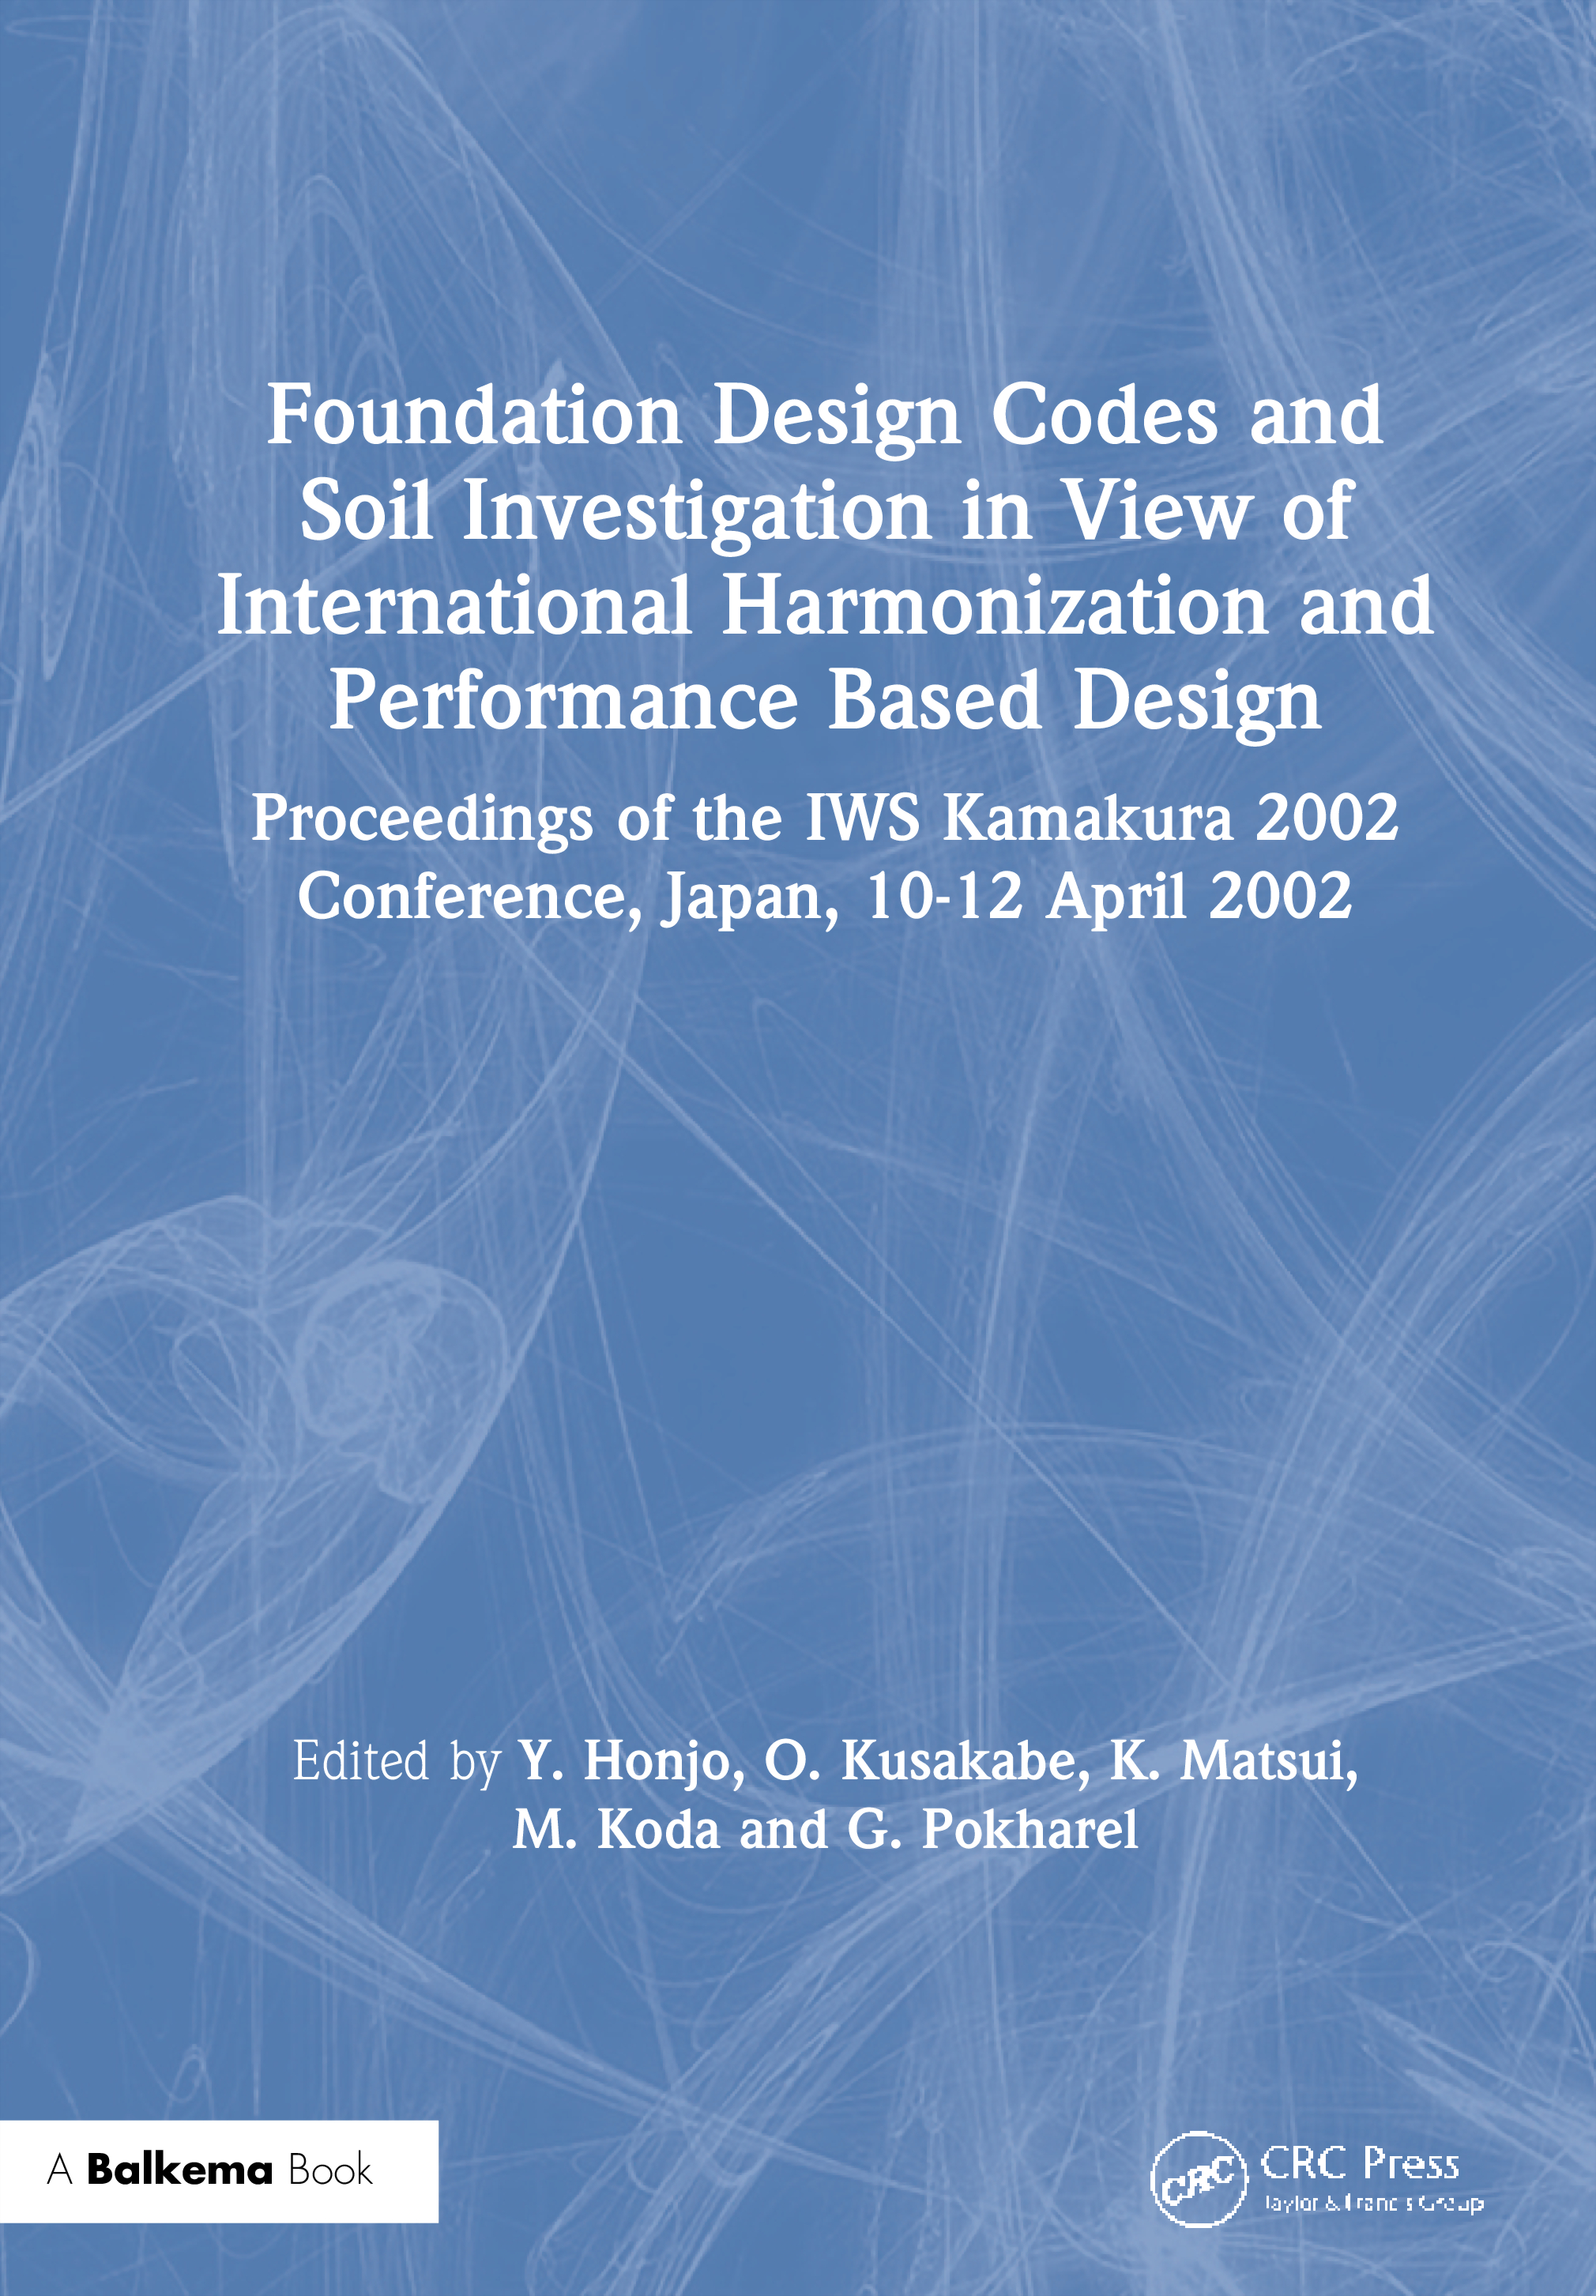 Foundation Design Codes and Soil Investigation in View of International Harmonization and Performance Based Design: Proceedings of the IWS Kamakura 2002 Conference, Japan, 10-12 April 2002, 1st Edition (Hardback) book cover